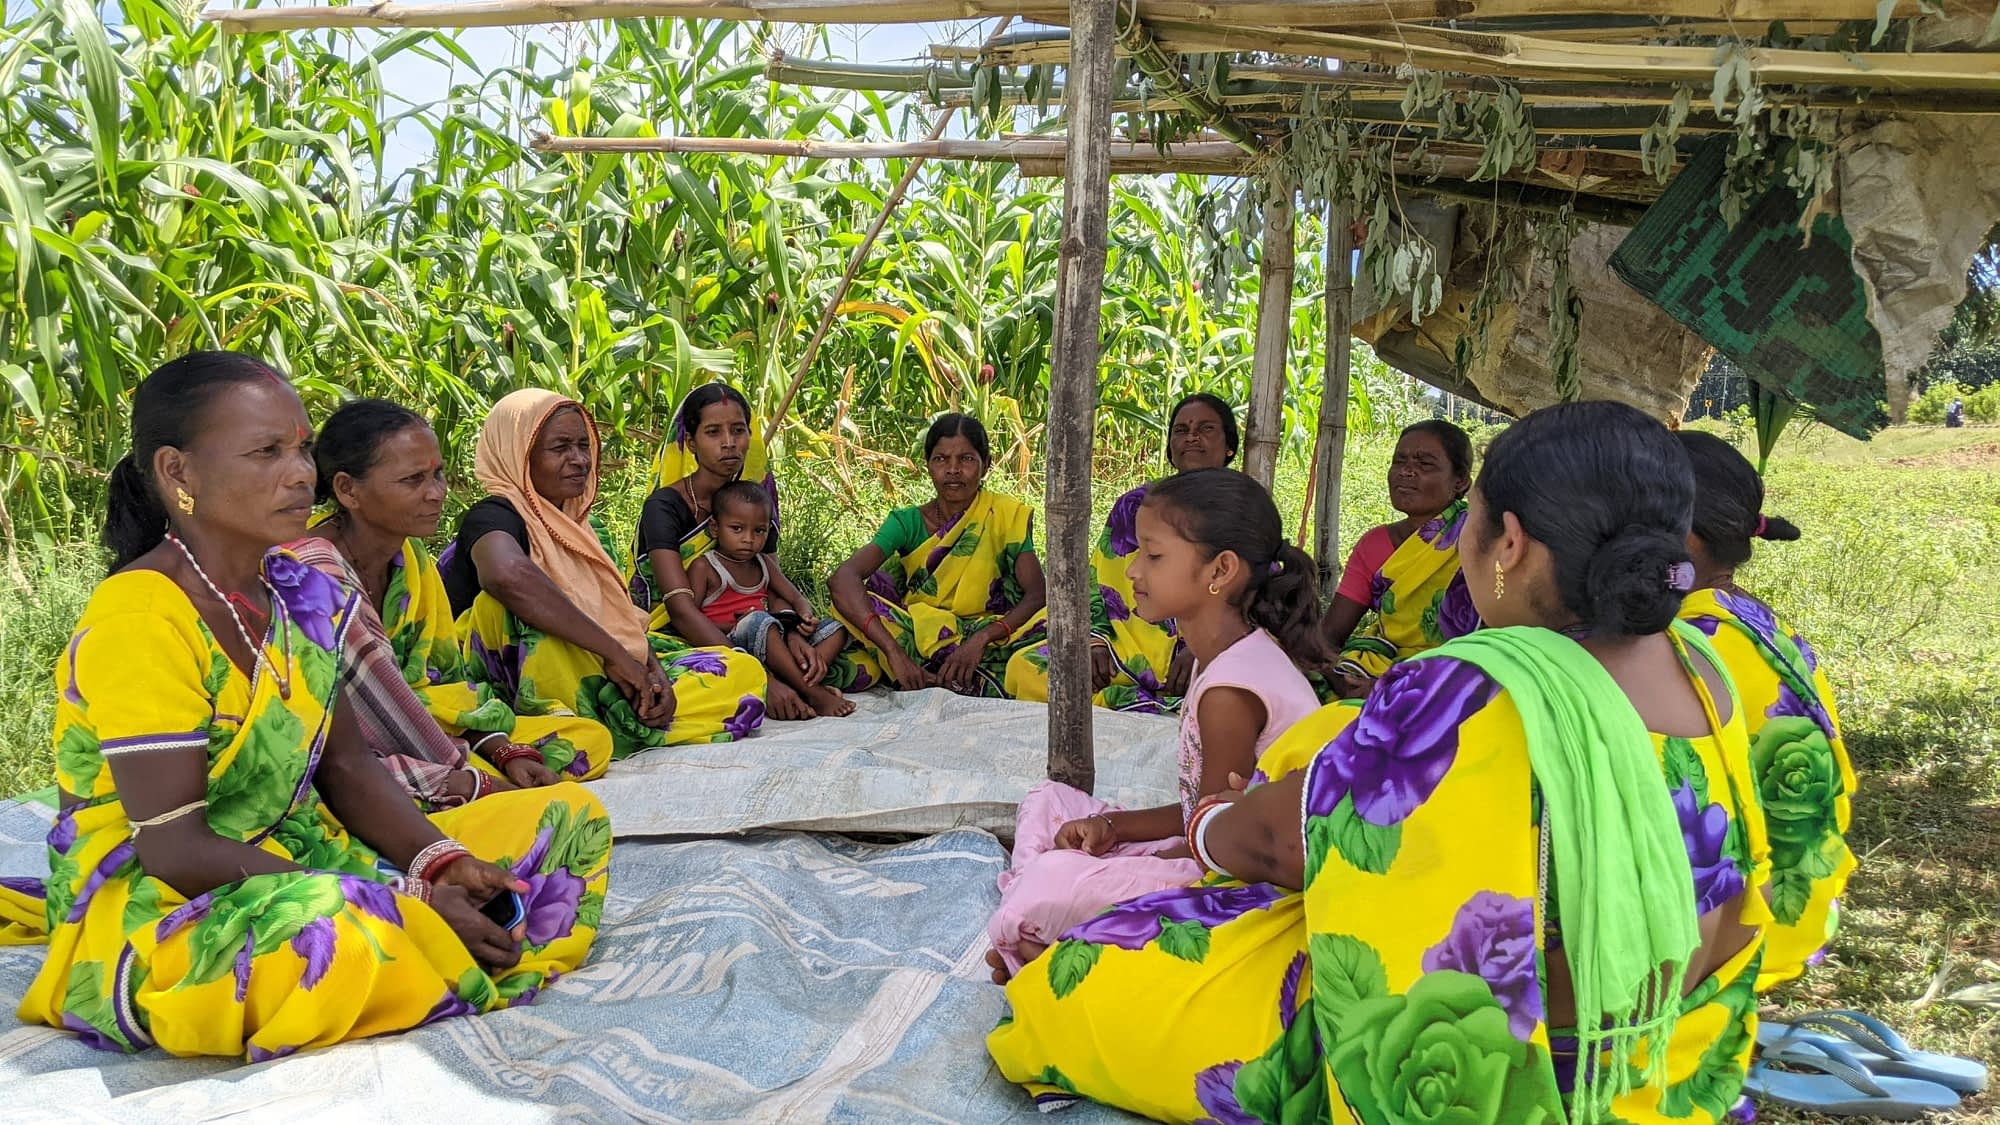 Anita Naik (first from left) meets with her self-help group Biswa Jay Maa Tarini in village of Badbil, in the Mayurbhanj district of India's Odisha state. Together, they work on a five-acre lease land, where they grow maize commercially. (Photo: CIMMYT)